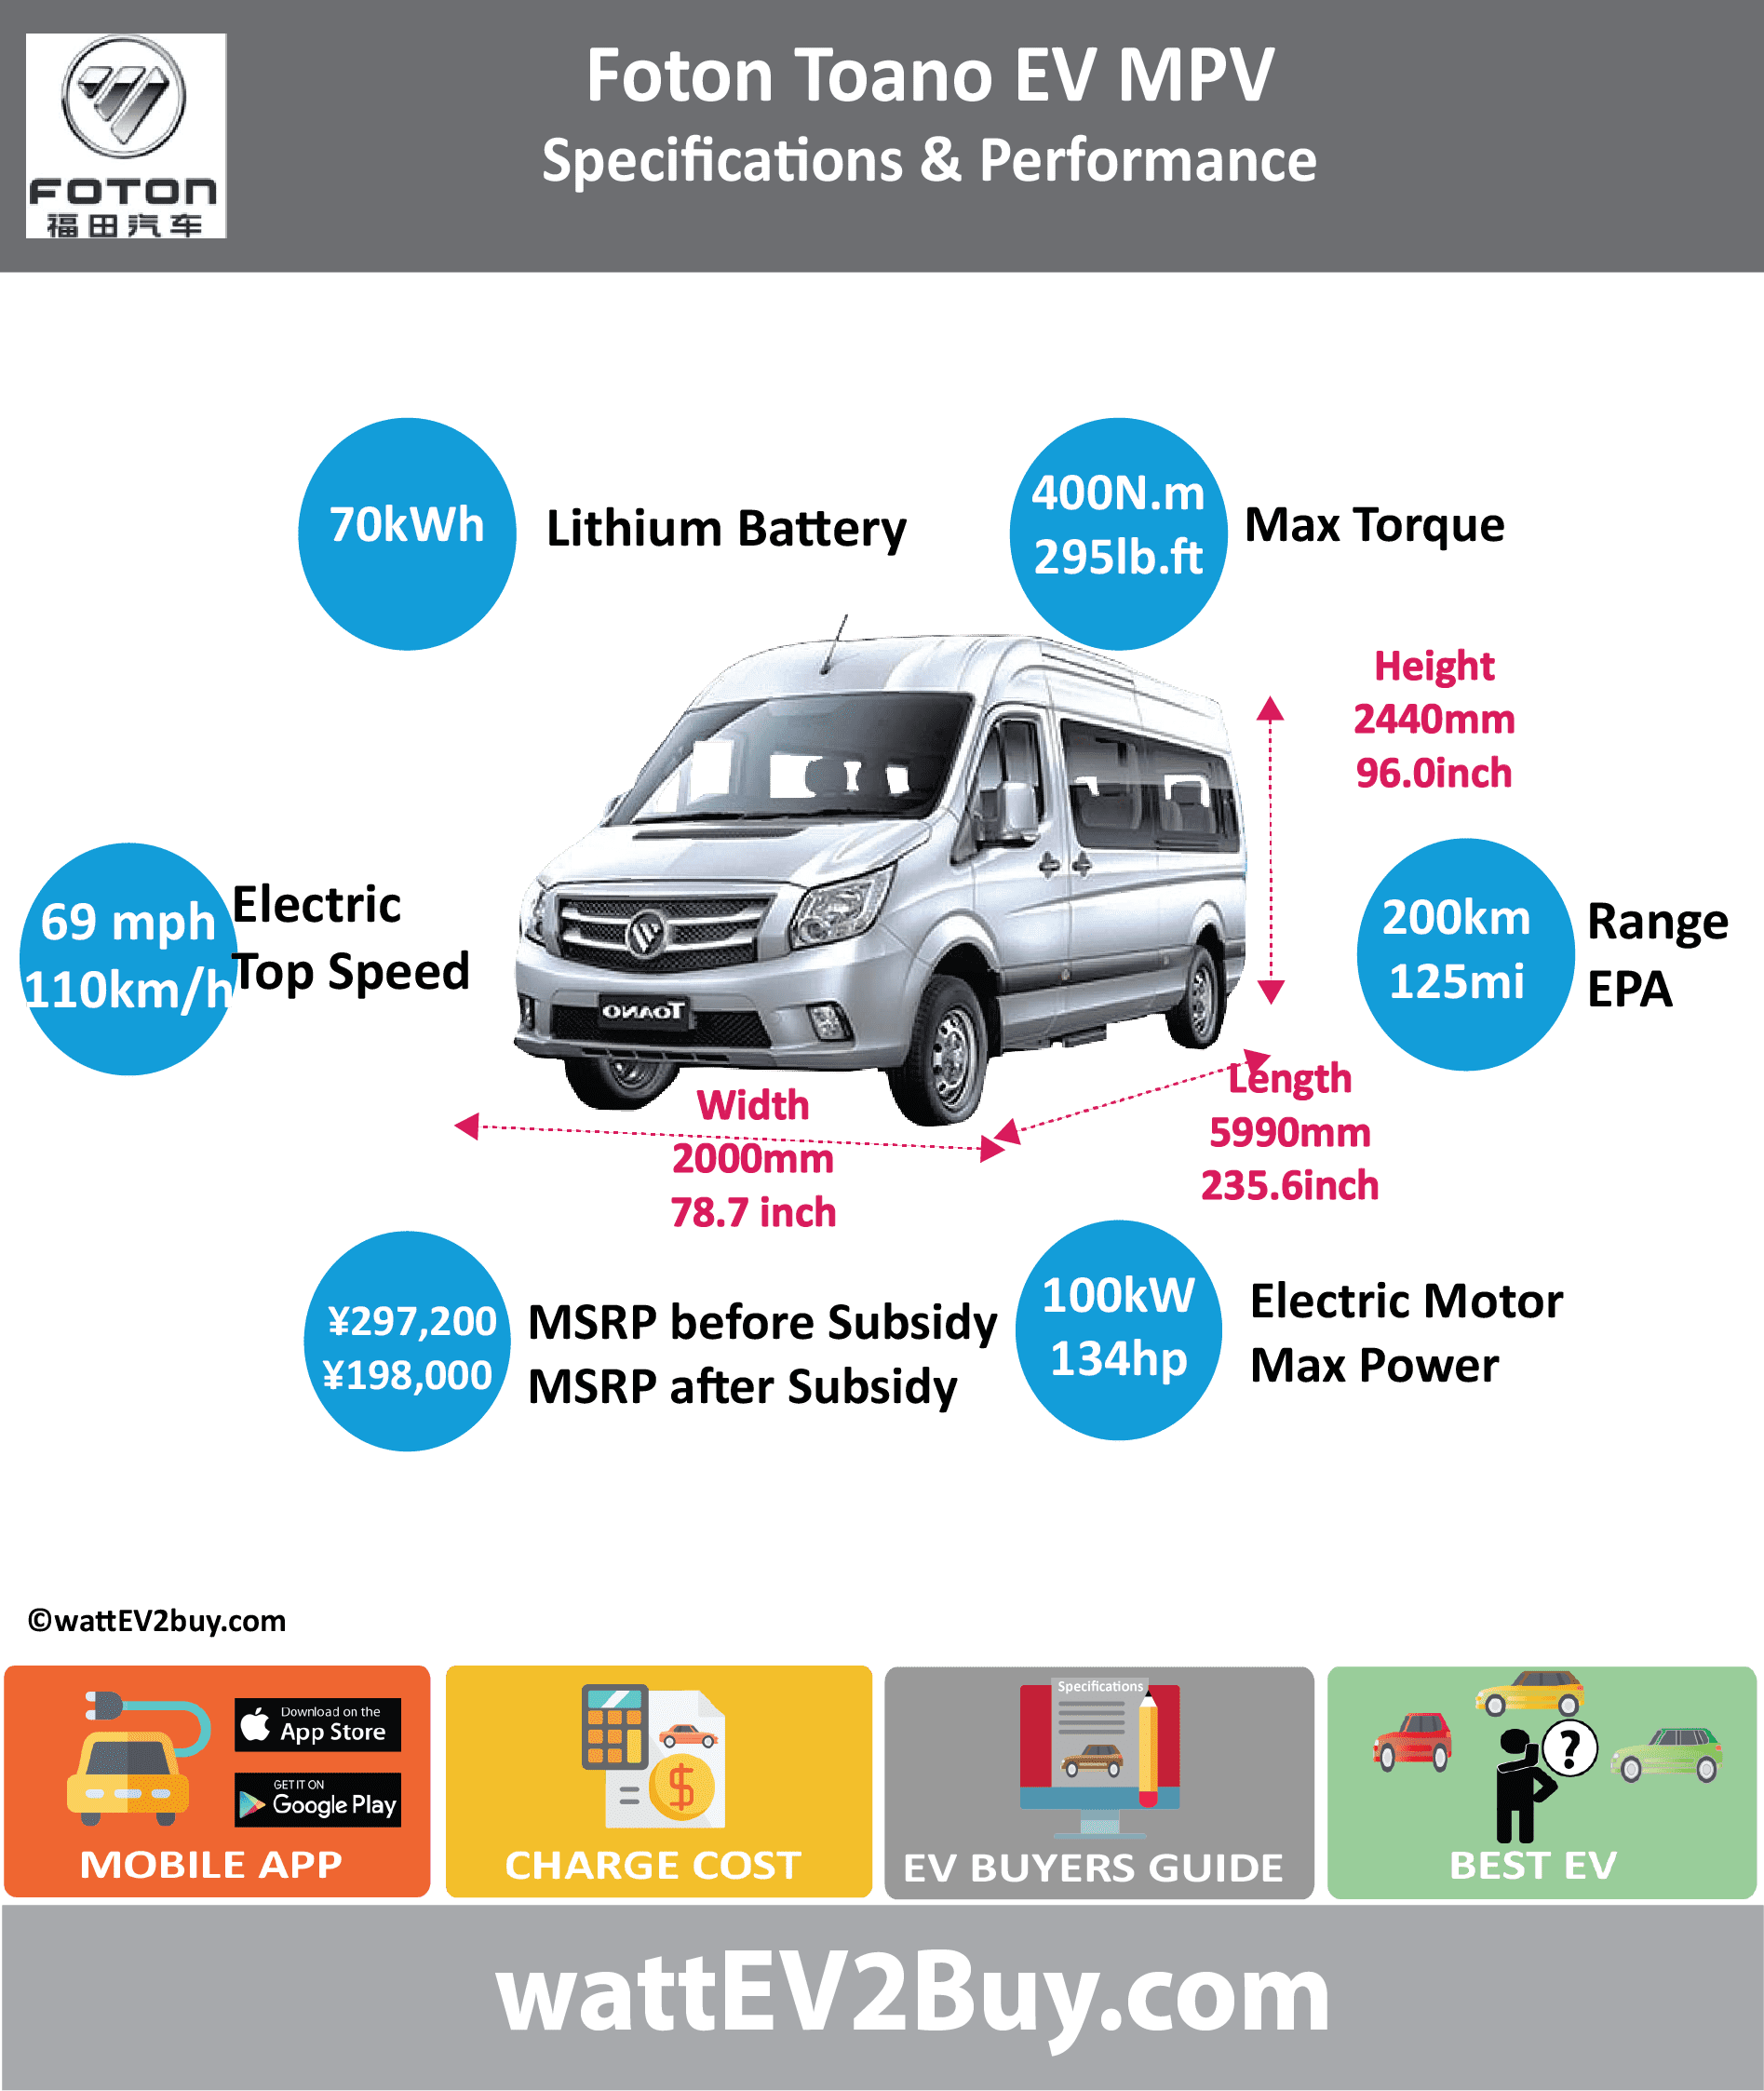 Foton Toano EV MPV Specs	 wattev2Buy.com	2017 Battery Chemistry	 Battery Capacity kWh	70 Battery Nominal rating kWh	66.6 Voltage V	350.4 Amps Ah	190 Cells	 Modules	 Efficiency	 Weight (kg)	 Cell Type	 SOC	 Cooling	 Cycles	 Battery Type	 Depth of Discharge (DOD)	 Energy Density Wh/kg	 Battery Manufacturer	 Battery Warranty - years	3 Battery Warranty - km	80000 Battery Warranty - miles	 Battery Electric Range - at constant 38mph	187.5 Battery Electric Range - at constant 60km/h	300 Battery Electric Range - NEDC Mi	125 Battery Electric Range - NEDC km	200 Battery Electric Range - CCM Mi	 Battery Electric Range - CCM km	 Battery Electric Range - EPA Mi	 Battery Electric Range - EPA km	 Electric Top Speed - mph	68.75 Electric Top Speed - km/h	110 Acceleration 0 - 100km/h sec	 Acceleration 0 - 50km/h sec	 Acceleration 0 - 62mph sec	 Acceleration 0 - 60mph sec	 Acceleration 0 - 37.2mph sec	 Wireless Charging	 Direct Current Fast Charge kW	 Charger Efficiency	 Onboard Charger kW	 Onboard Charger Optional kW	 Charging Cord - amps	 Charging Cord - volts	 LV 1 Charge kW	 LV 1 Charge Time (Hours)	 LV 2 Charge kW	 LV 2 Charge Time (Hours)	 LV 3 CCS/Combo kW	 LV 3 Charge Time (min to 70%)	 LV 3 Charge Time (min to 80%)	 LV 3 Charge Time (mi)	 LV 3 Charge Time (km)	 Supercharger	 Charging System kW	 Charger Output	 Charge Connector	 Power Outlet kW	 Power Outlet Amps	 MPGe Combined - miles	 MPGe Combined - km	 MPGe City - miles	 MPGe City - km	 MPGe Highway - miles	 MPGe Highway - km	 Max Power - hp (Electric Max)	134.102 Max Power - kW  (Electric Max)	100 Max Torque - lb.ft  (Electric Max)	295.0287653 Max Torque - N.m  (Electric Max)	400 Drivetrain	 Generator	 Motor Type	 Electric Motor Manufacturer	 Electric Motor Output kW	55 Electric Motor Output hp	 Transmission	 Electric Motor - Rear	 Max Power - hp (Rear)	 Max Power - kW (Rear)	 Max Torque - lb.ft (Rear)	 Max Torque - N.m (Rear)	 Electric Motor - Front	 Max Power - hp (Front)	 Max Power - kW (Front)	 Max Torque - lb.ft (Front)	 Max Torque - N.m (Front)	 Energy Consumption kWh/100km	 Energy Consumption kWh/100miles	 Deposit	 GB Battery Lease per month	 EU Battery Lease per month	 MSRP (expected)	 EU MSRP (before incentives & destination)	 GB MSRP (before incentives & destination)	 US MSRP (before incentives & destination)	 CHINA MSRP (before incentives & destination)	 ¥297,200.00  MSRP after incentives	 ¥198,000.00  Vehicle	 Trims	 Doors	 Seating	 Dimensions	 Luggage (L)	 GVWR (kg)	 GVWR (lbs)	 Curb Weight (kg)	 Curb Weight (lbs)	 Payload Capacity (kg)	 Payload Capacity (lbs)	 Towing Capacity (lbs)	 Max Load Height (m)	 Ground Clearance (inc)	 Ground Clearance (mm)	 Lenght (mm)	5990 Width (mm)	2000 Height (mm)	2440 Wheelbase (mm)	 Lenght (inc)	235.6 Width (inc)	78.7 Height (inc)	96.0 Wheelbase (inc)	0.0 Other	 Utility Factor	 Auto Show Unveil	 Availability	 Market	 Segment	 LCD Screen (inch)	 Class	 Safety Level	 Unveiled	 Relaunch	 First Delivery	 Chassis designed	 Based On	 AKA	 Self-Driving System	 SAE Autonomous Level	 Connectivity	 Unique	 Extras	 Incentives	 Home Charge Installation	 Public Charging	 Subsidy	 Chinese Name	福田图雅诺EV Model Code	 WEBSITE